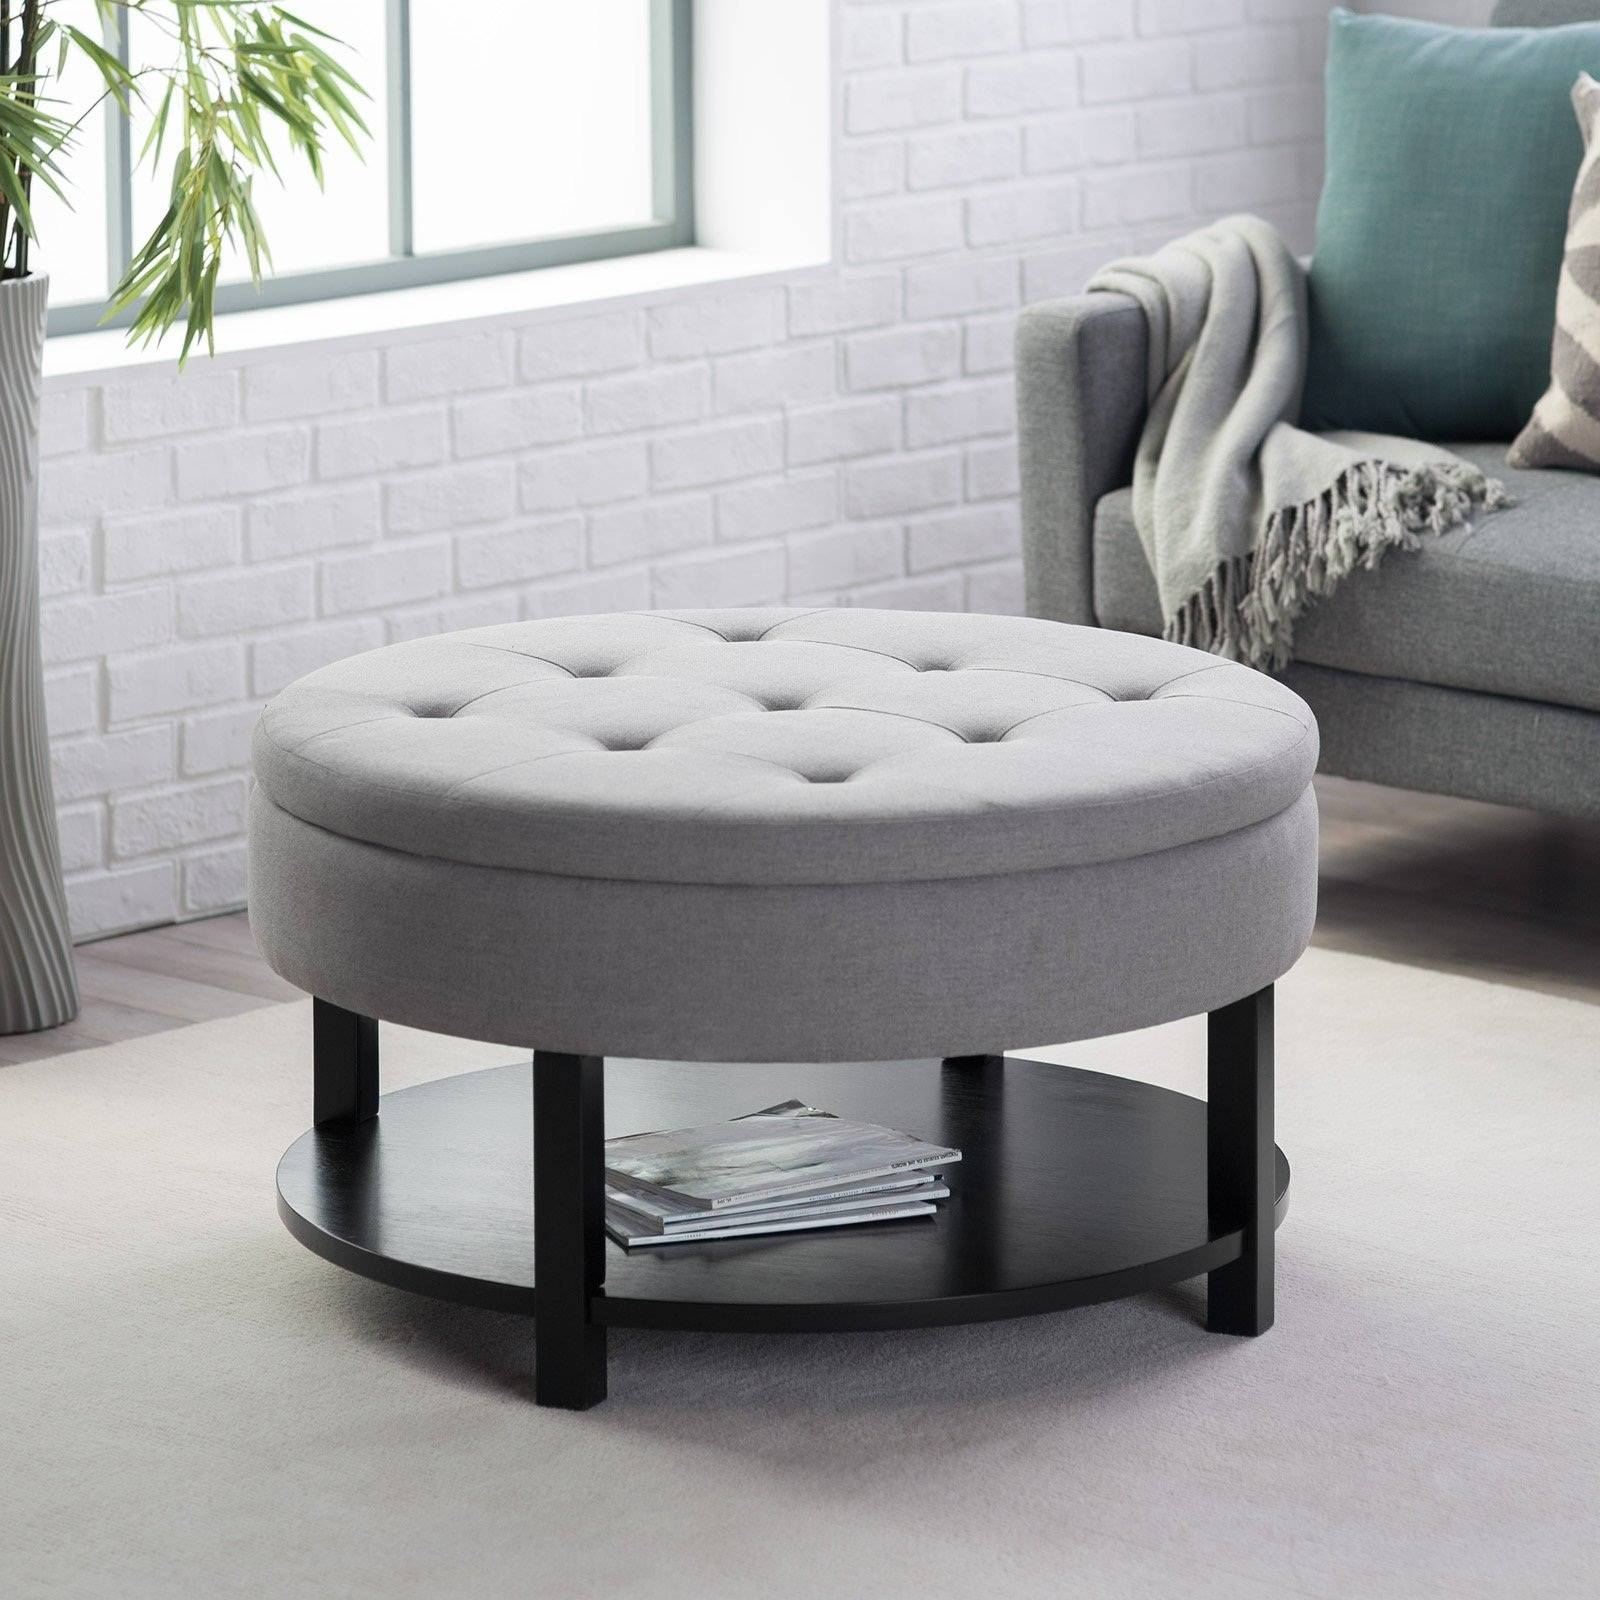 Ottoman Coffee Table Trays. Sofa Tray Table Vintage Black Wood throughout Round Upholstered Coffee Tables (Image 21 of 30)